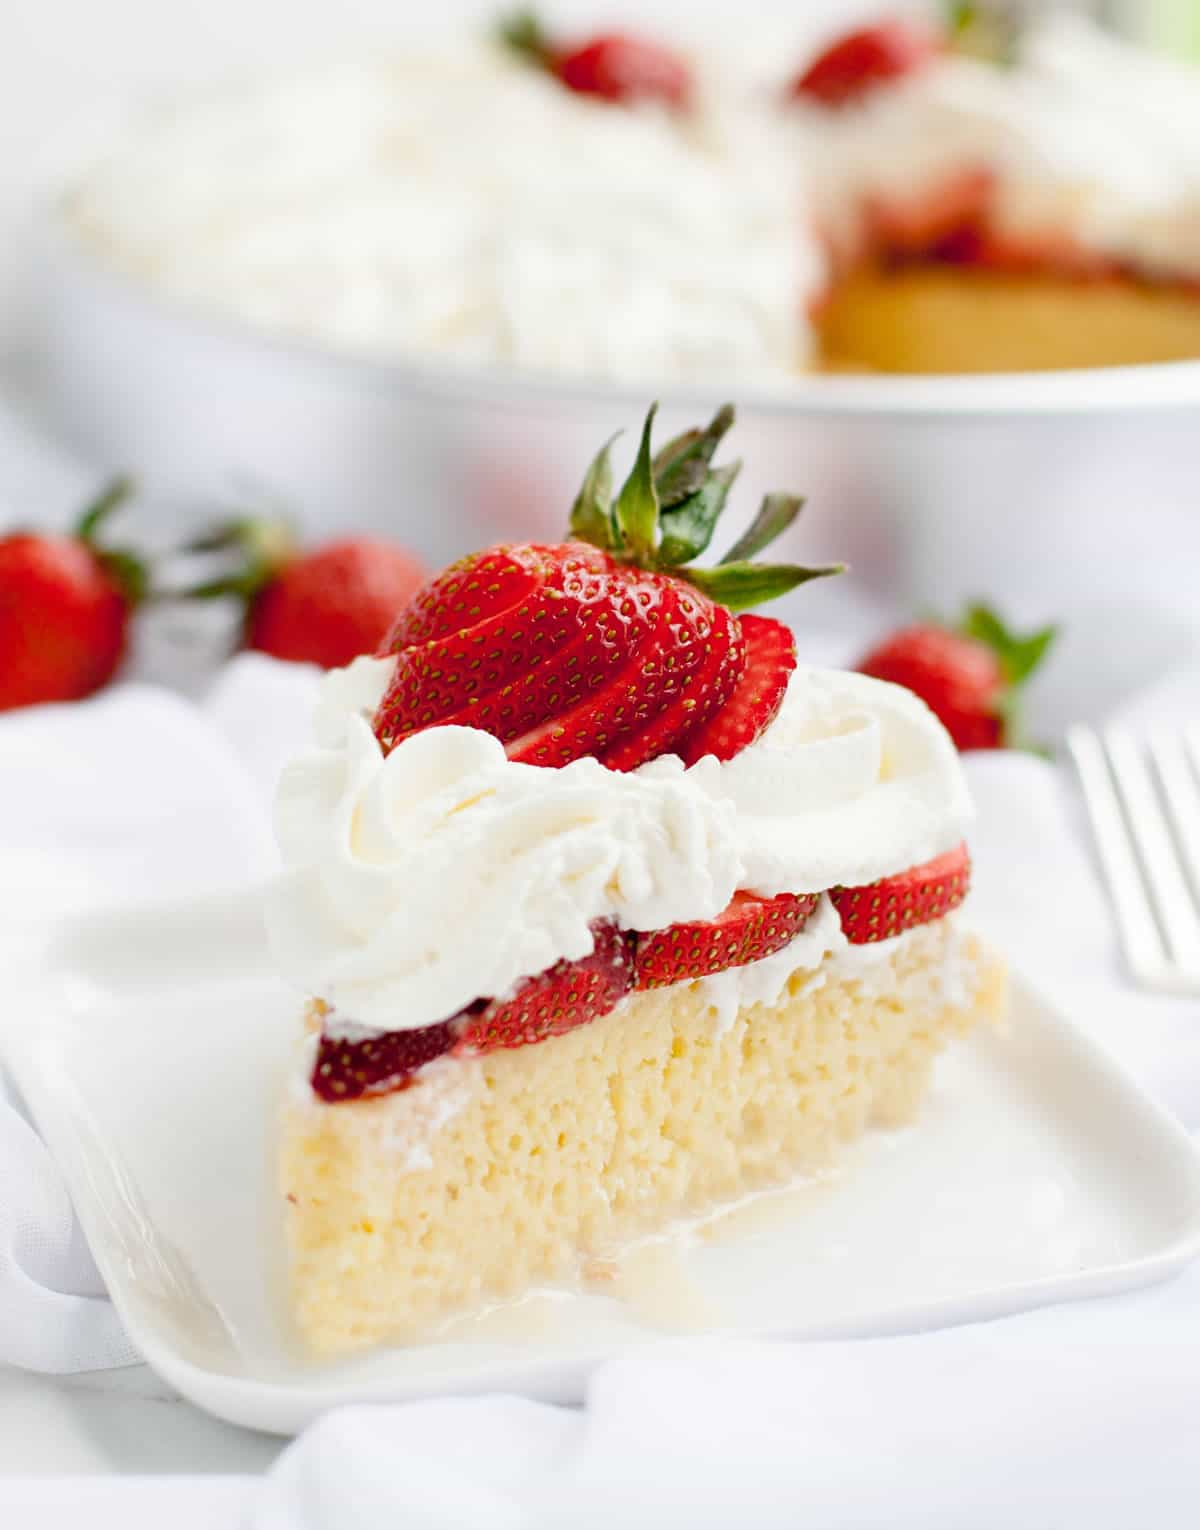 Strawberry Tres Leches Cake - The Merchant Baker